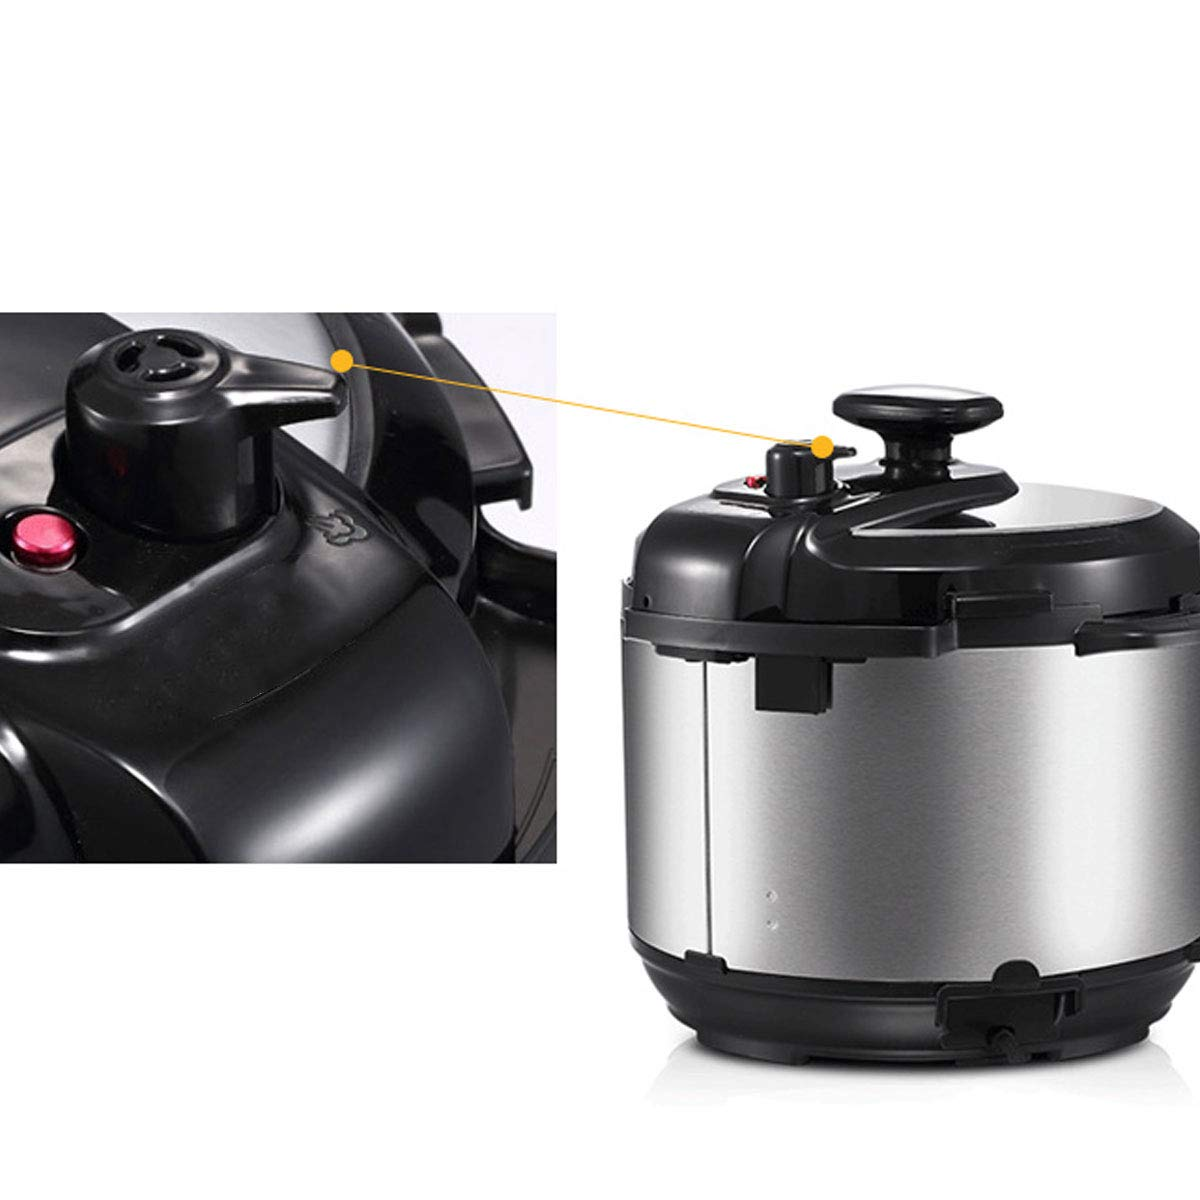 Freebily Steam Release Valve for Instant Pot Duo Mini 3 Qt Duo Plus Mini 3 Qt DUO60 6 Qt and DUO80 8 Qt Programmable Pressure Cooker Black One Size by Freebily (Image #3)